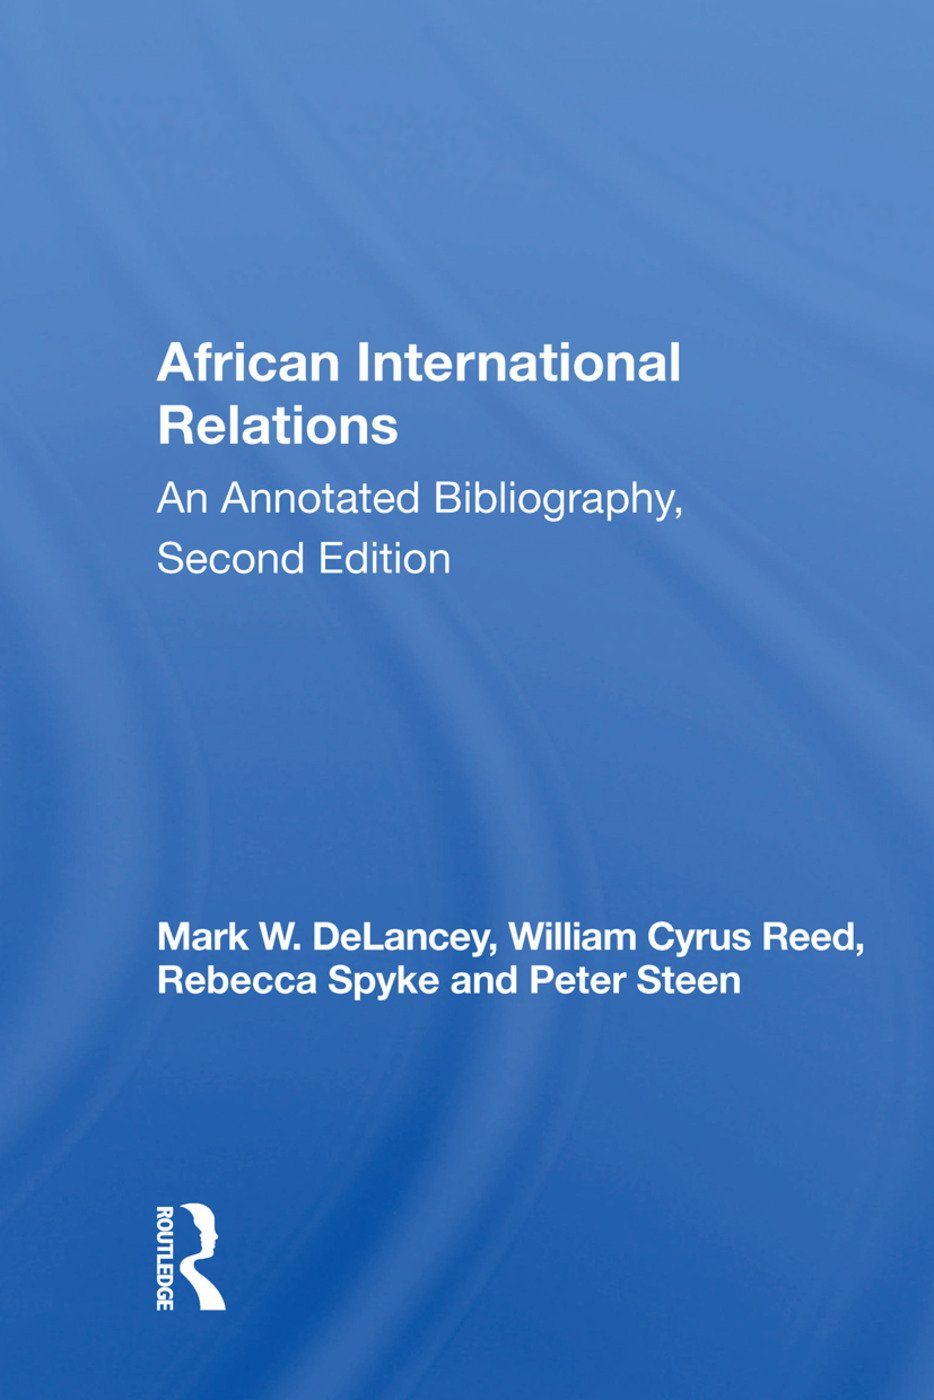 African International Relations: An Annotated Bibliography, Second Edition book cover